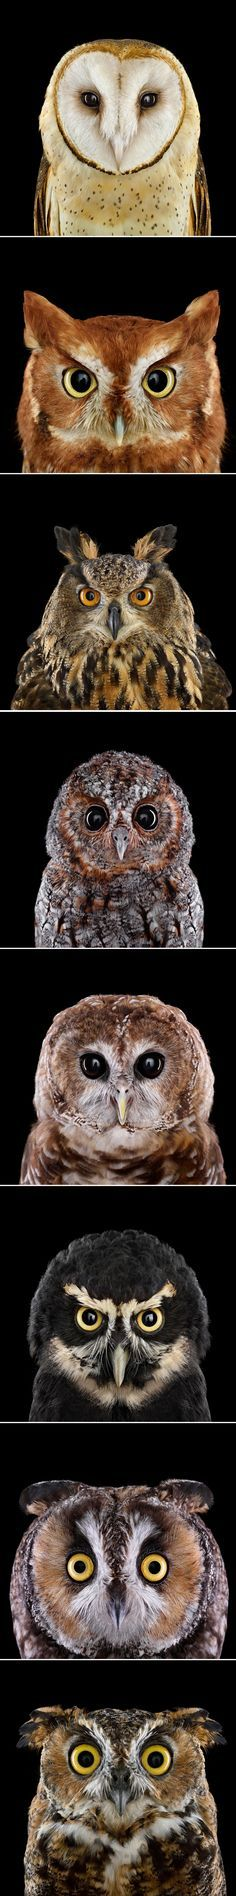 Who's Who: These owls may wear the same game face, but when it comes to personality, they're as different as day and night. Photos by Brad Wilson. | Audubon Society